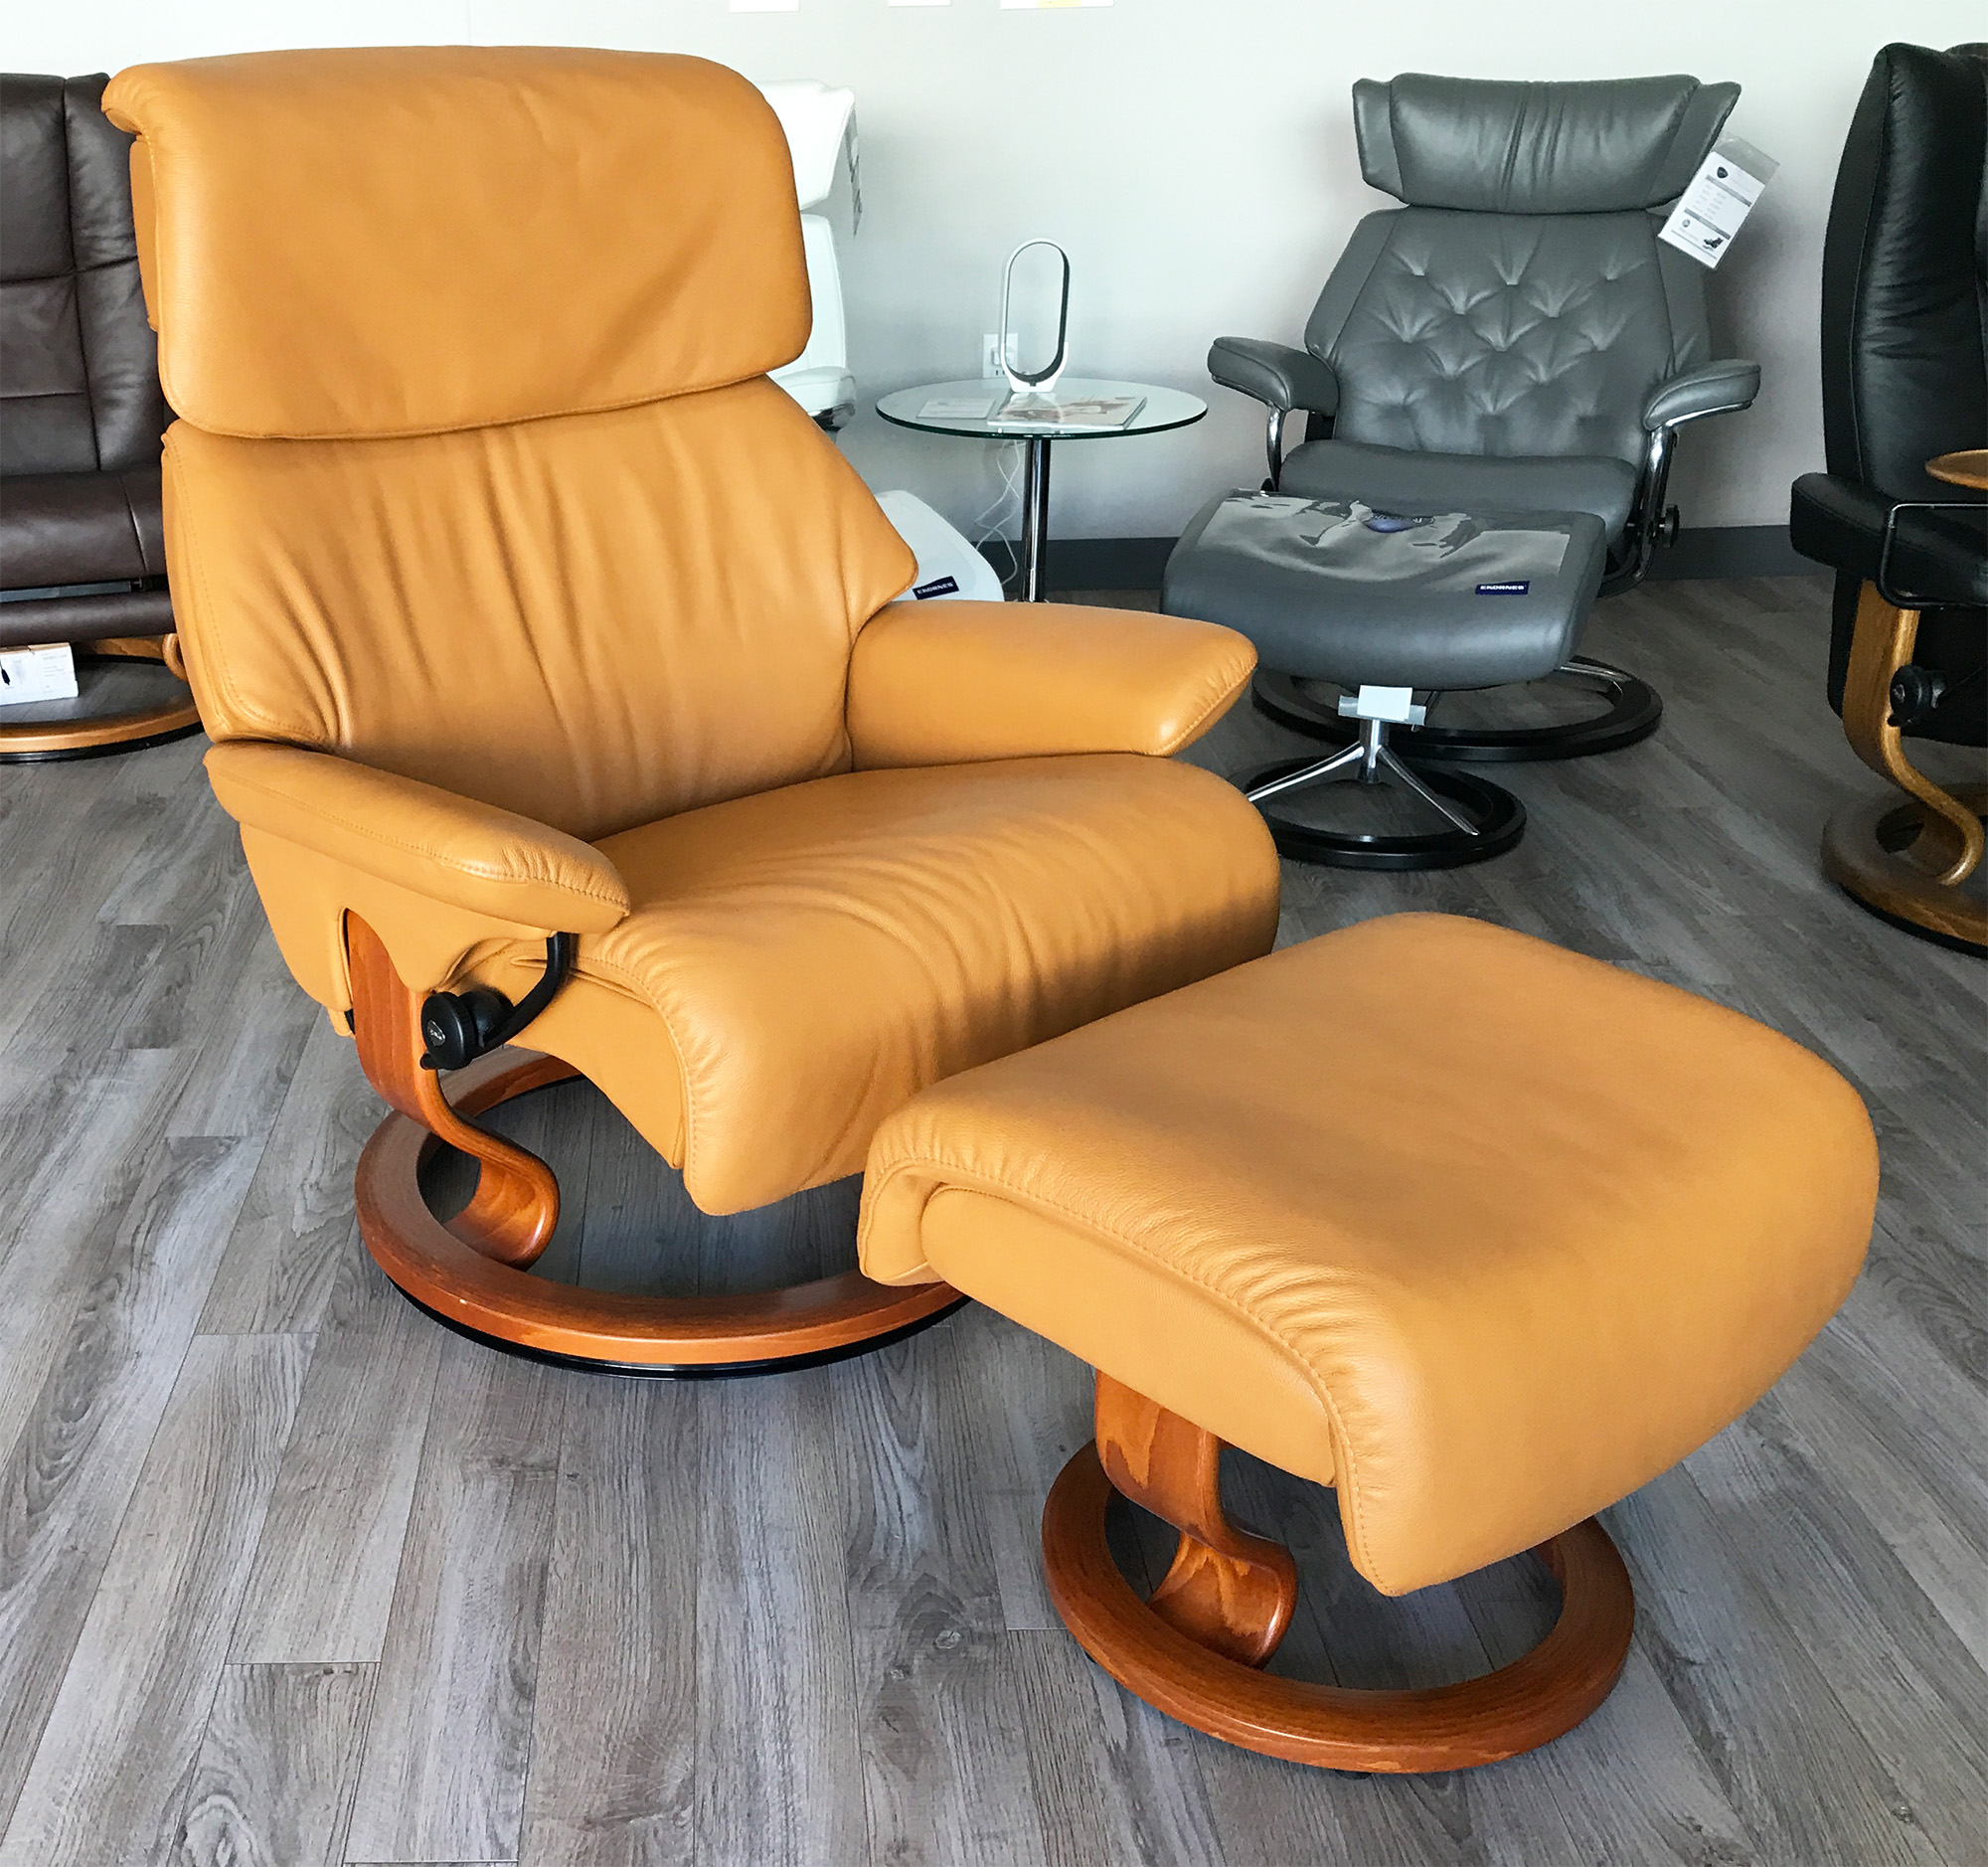 reclining chair with ottoman leather knoll replacement parts stressless spirit large dream cori tan recliner and by ekornes